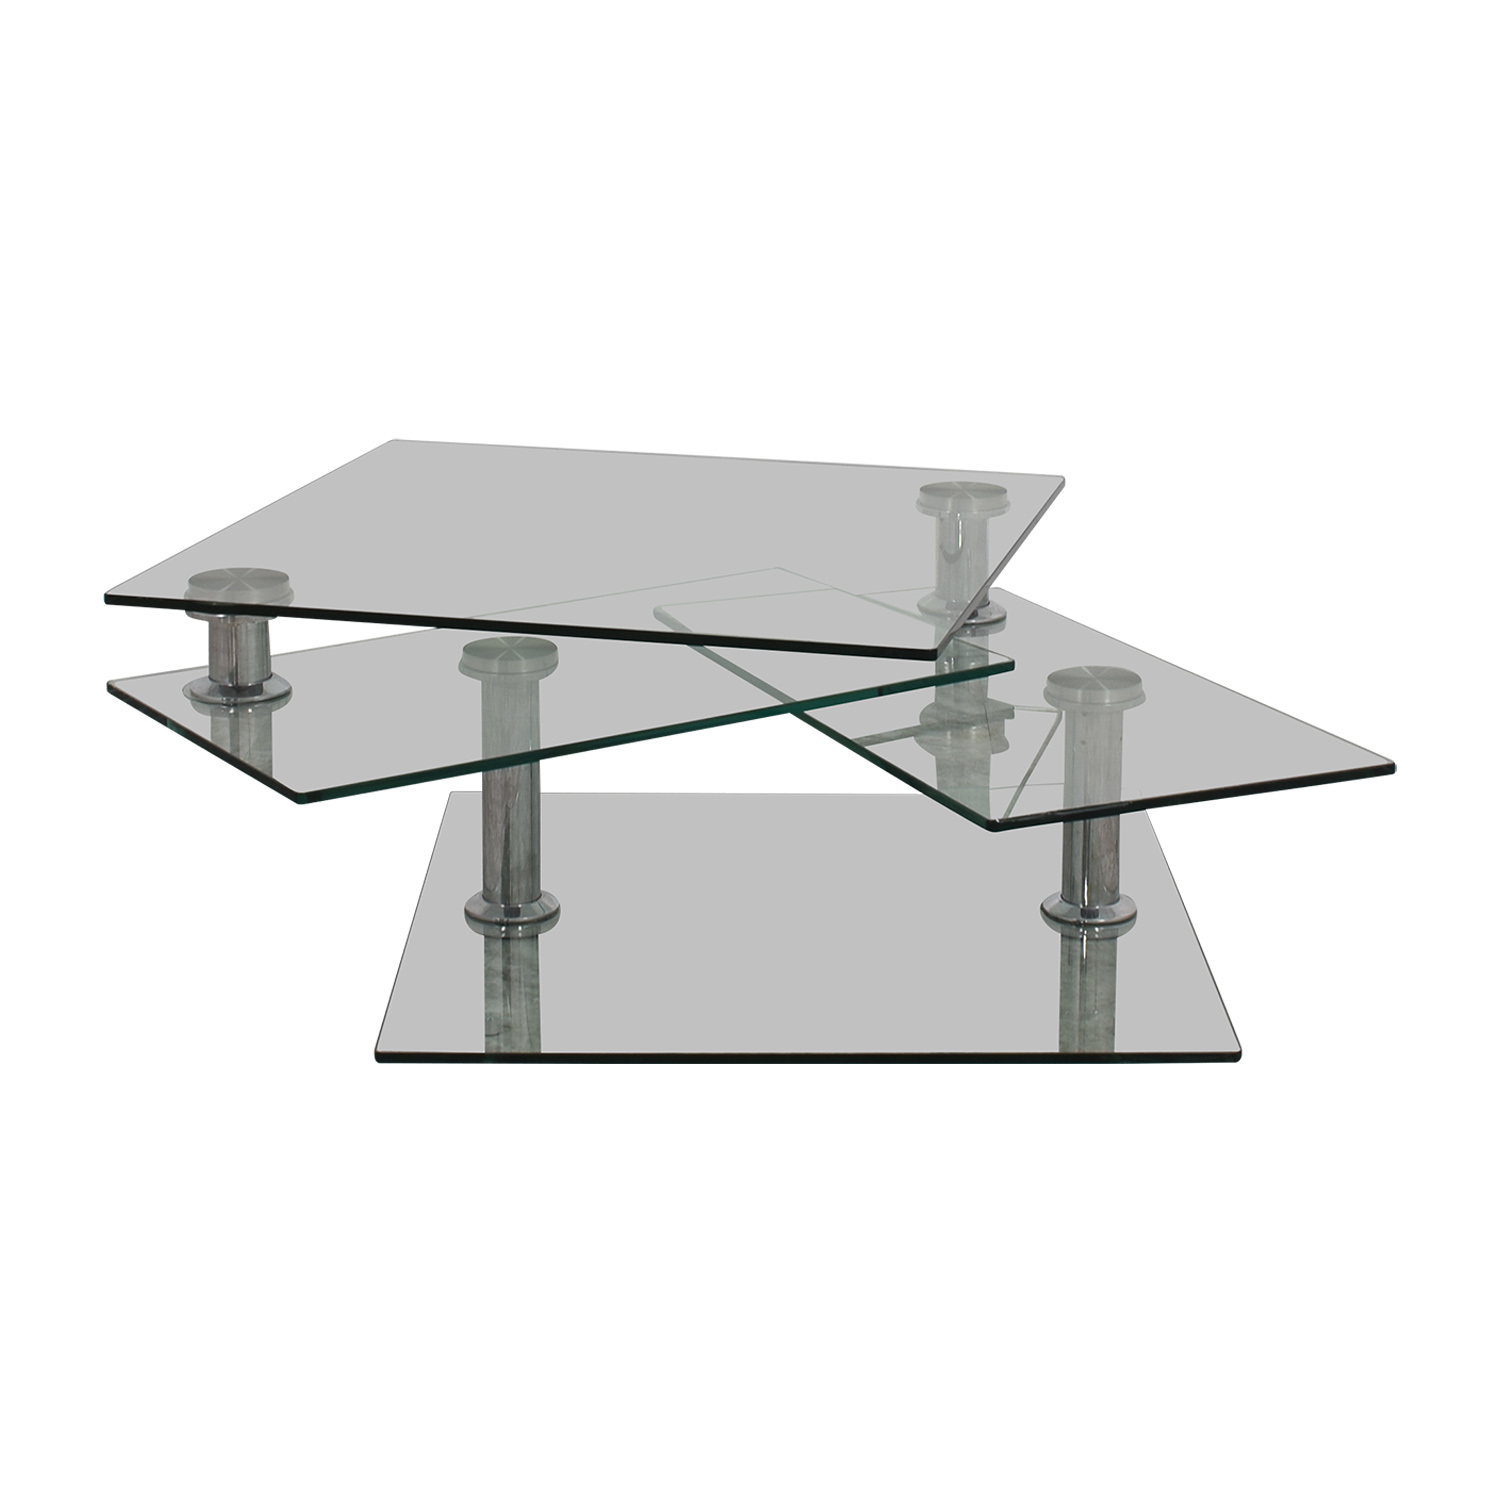 Magnificent 85 Off Z Gallerie Z Gallerie Movable Glass Coffee Table Tables Machost Co Dining Chair Design Ideas Machostcouk